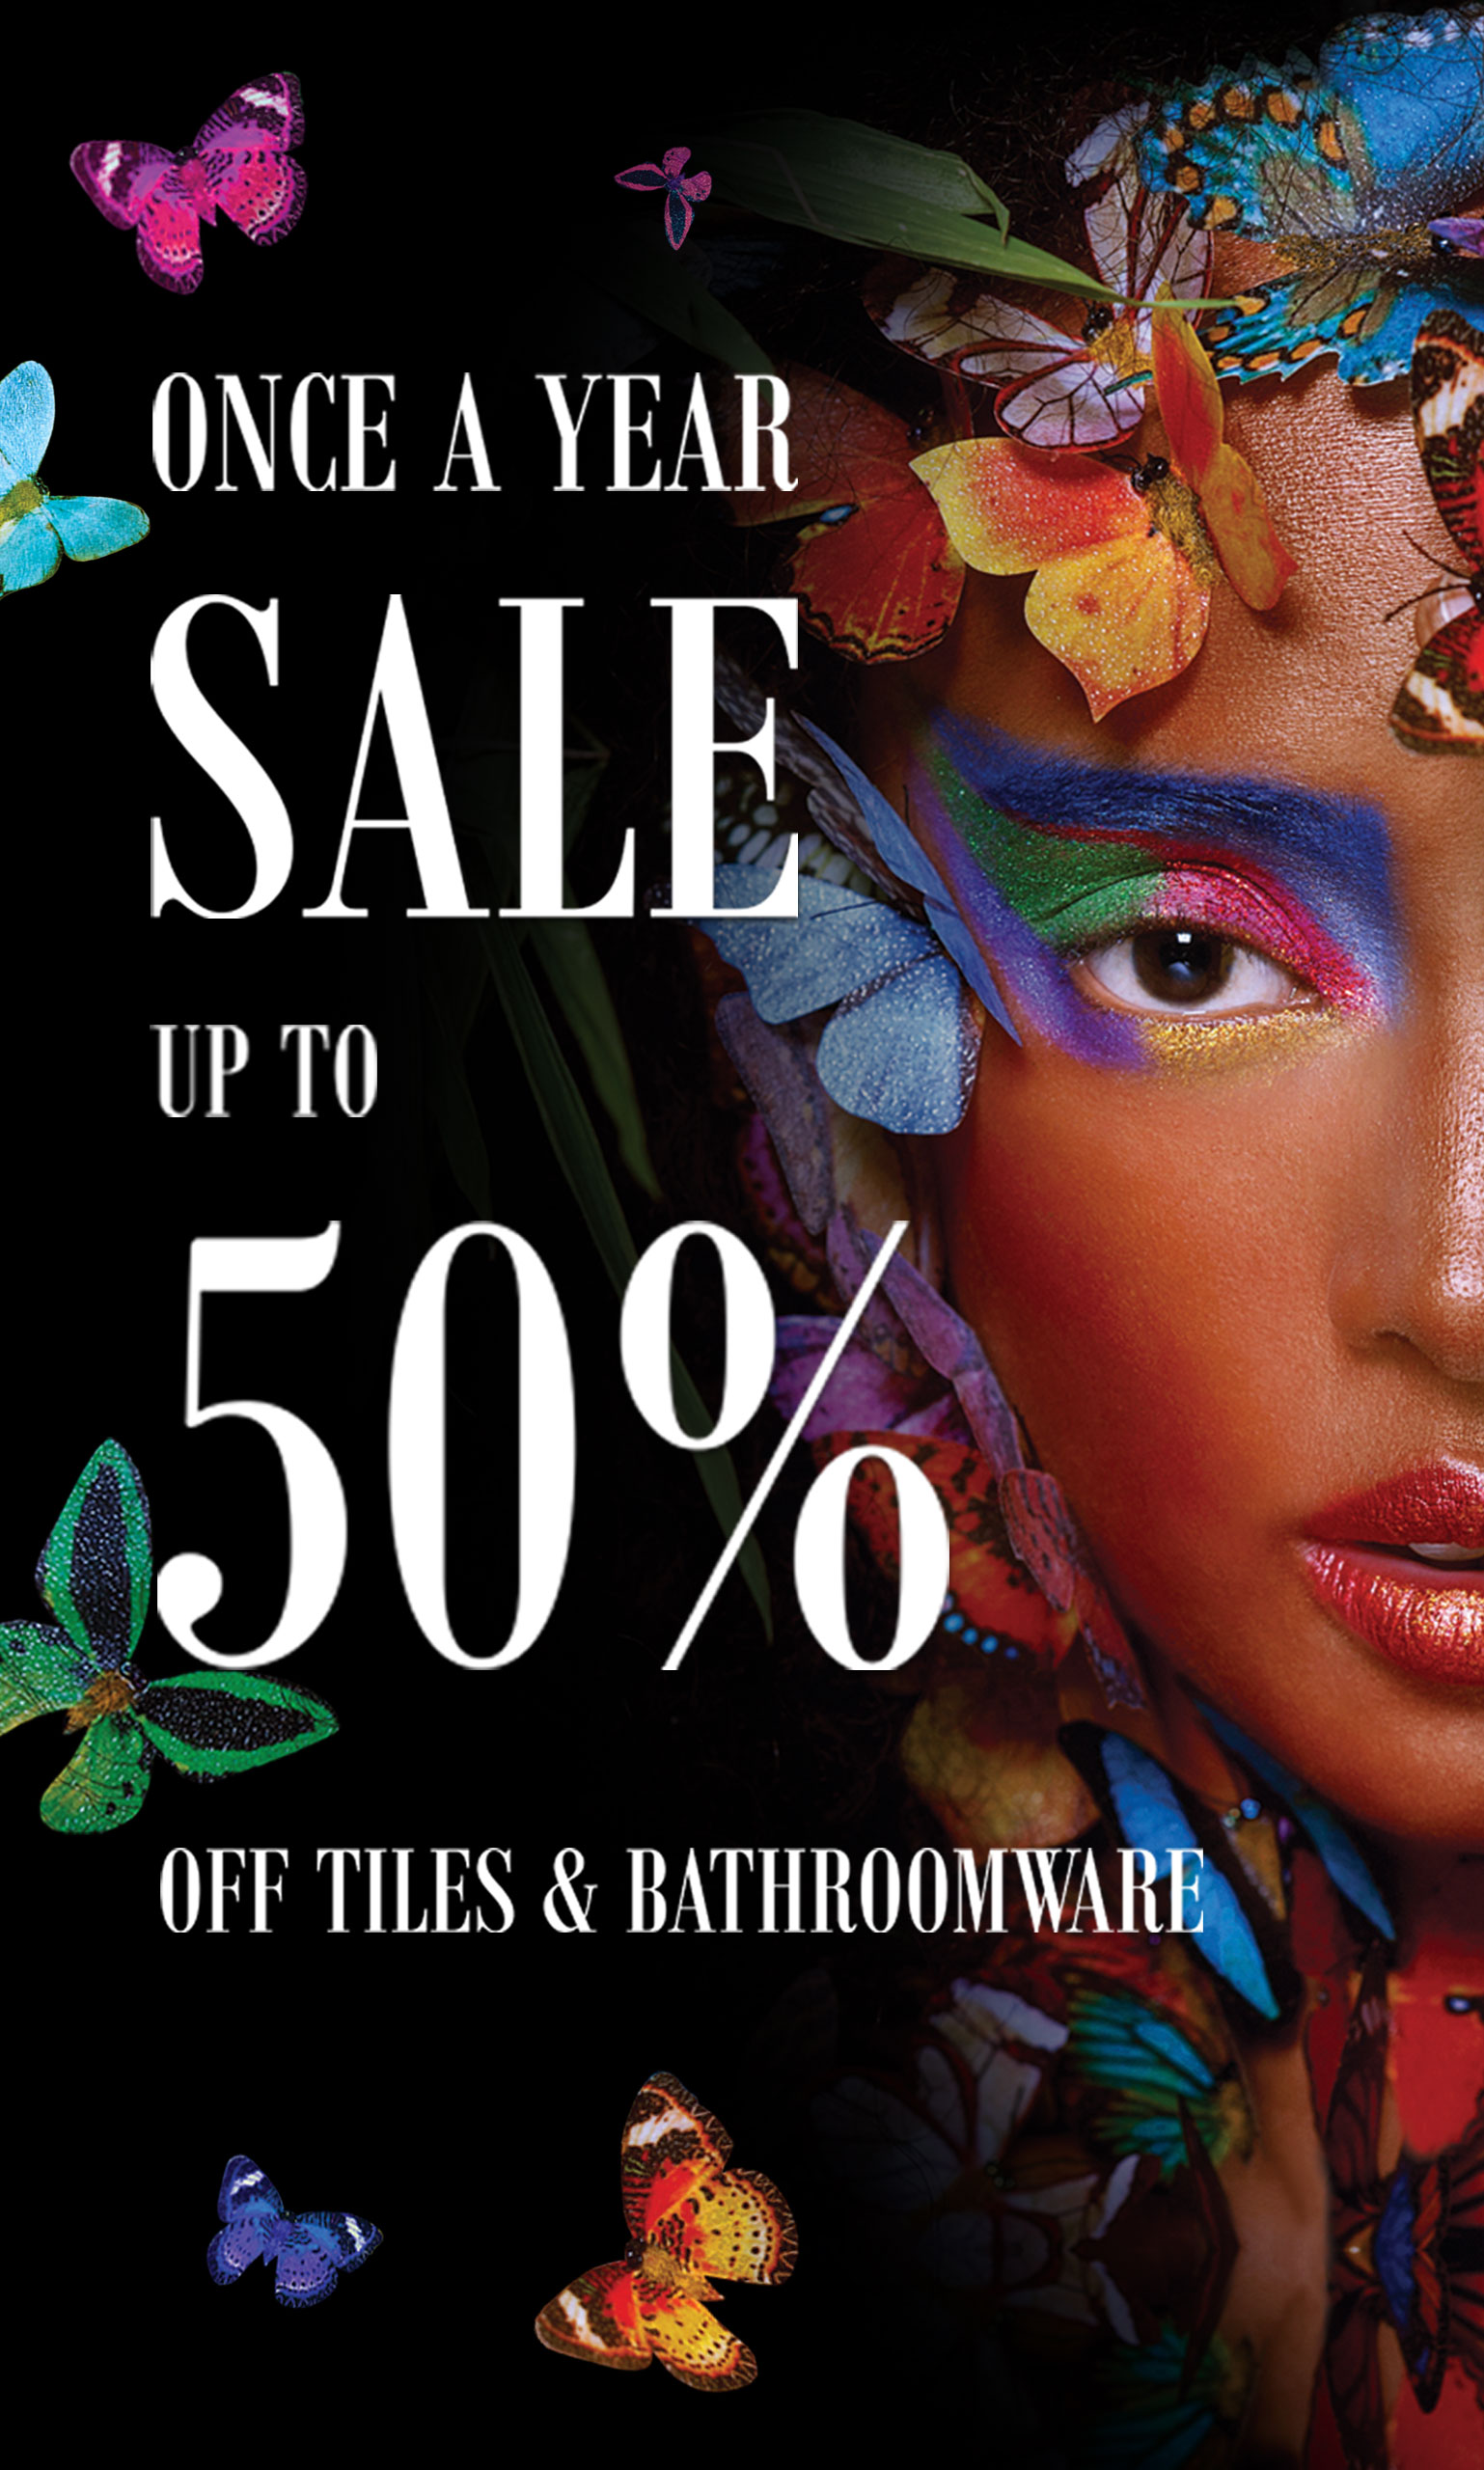 Once-A-Year-Sale-Tiles-Bathroomware-Mobile